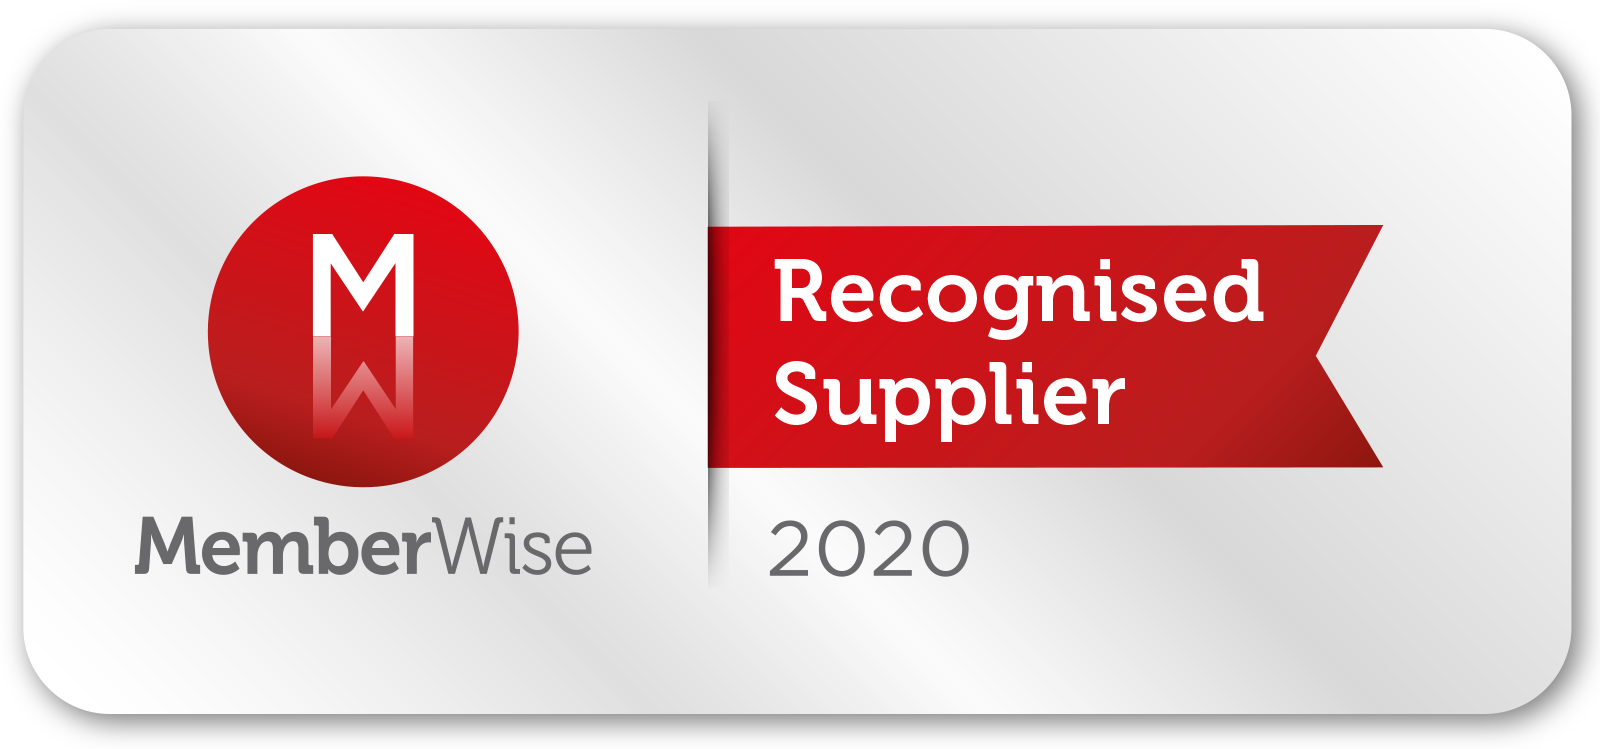 MemberWise-Recognised-Supplier-2020